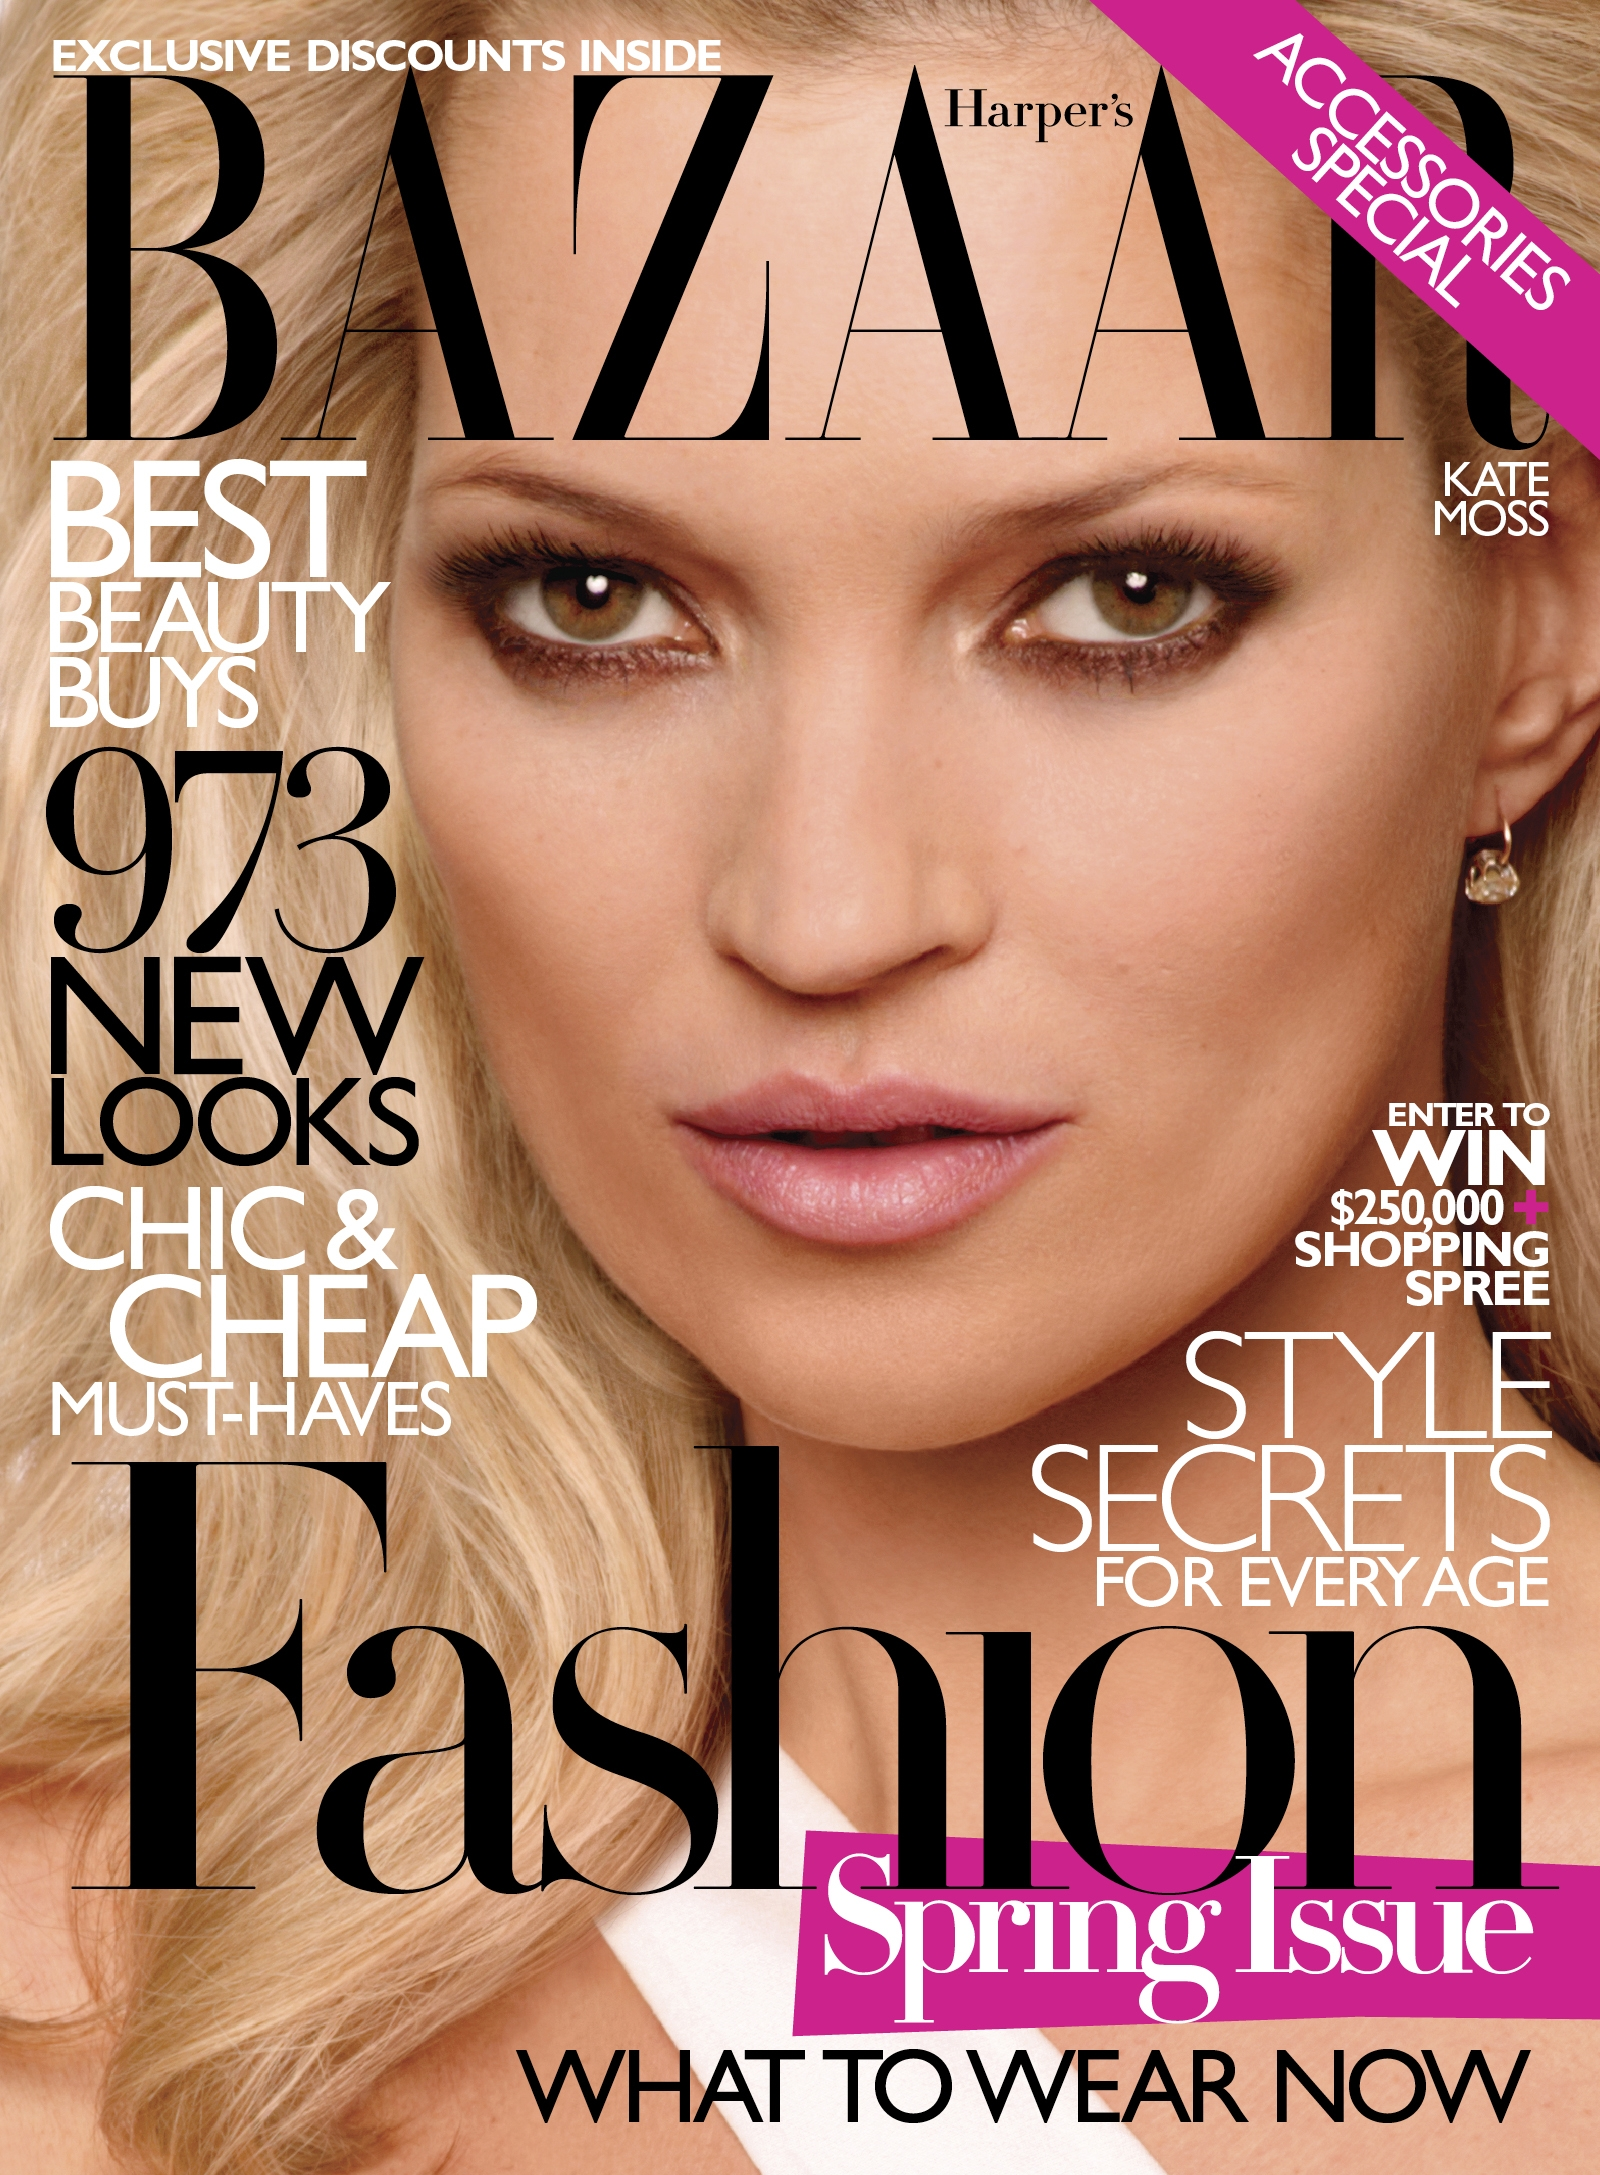 kate-moss-HARPERS-BAZAAR-march-cover